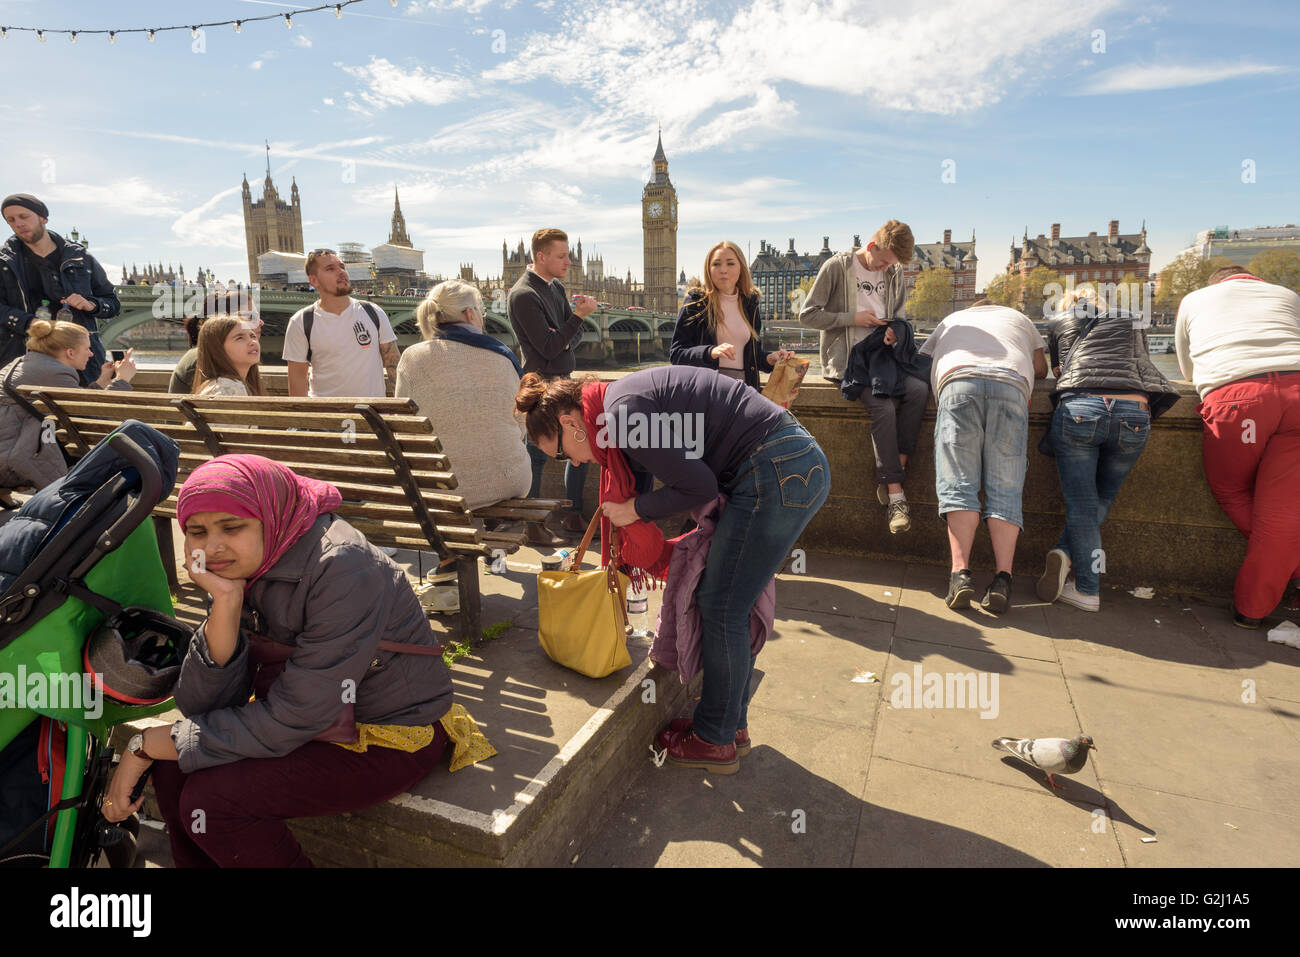 Tourists relaxing on the Queen's Walk with Big Ben and the Houses of Parliament in the Background - Stock Image